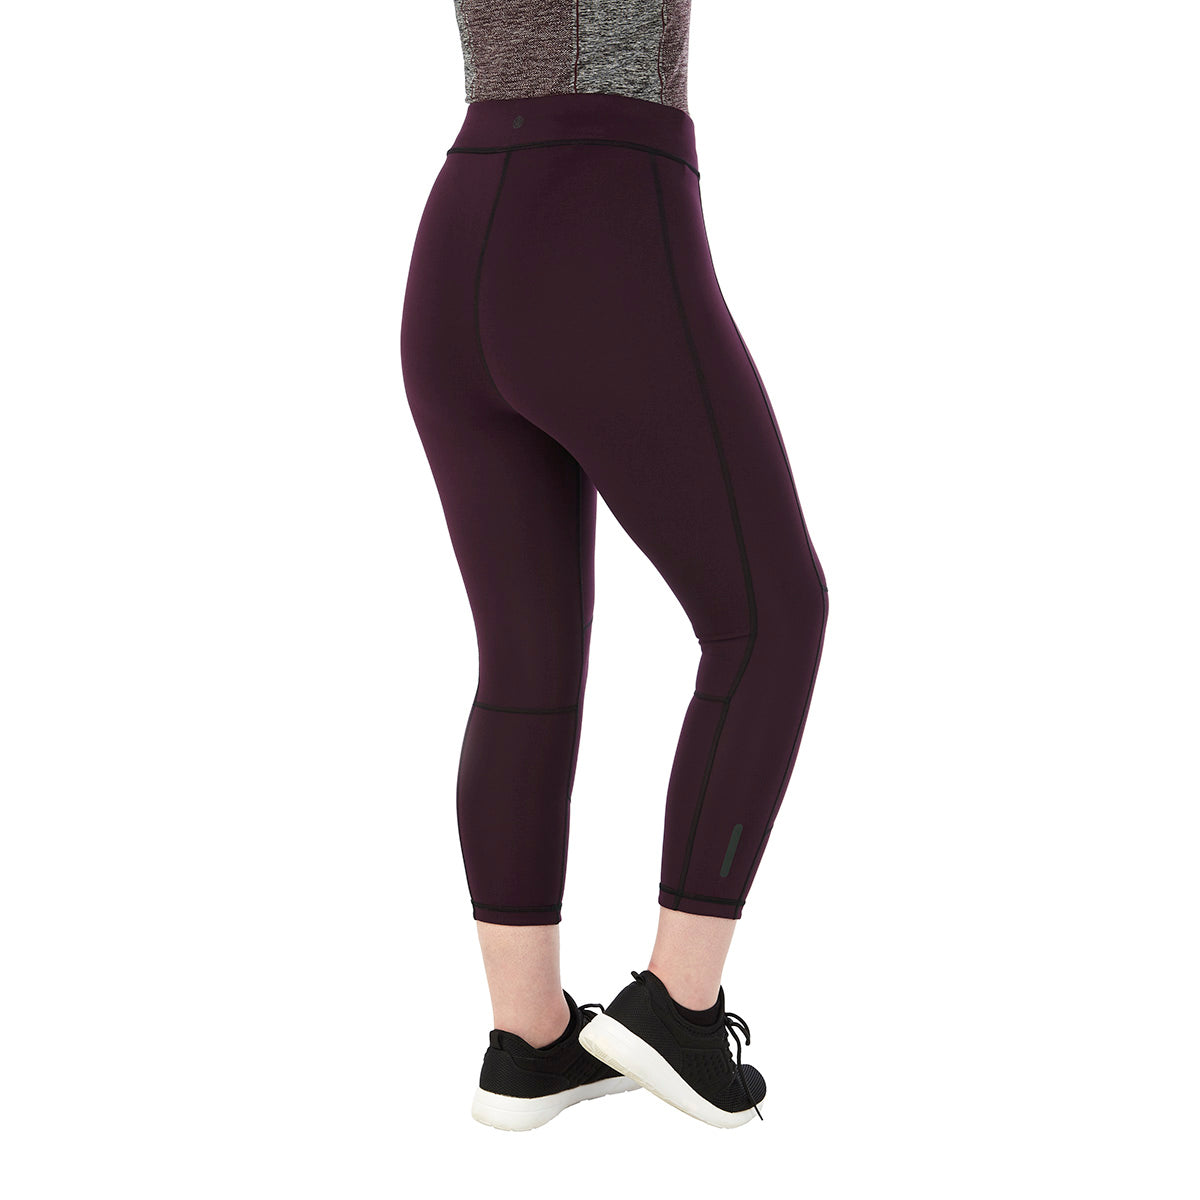 Raid Womens Reversible Performance Capris - Deep Port/Black image 4